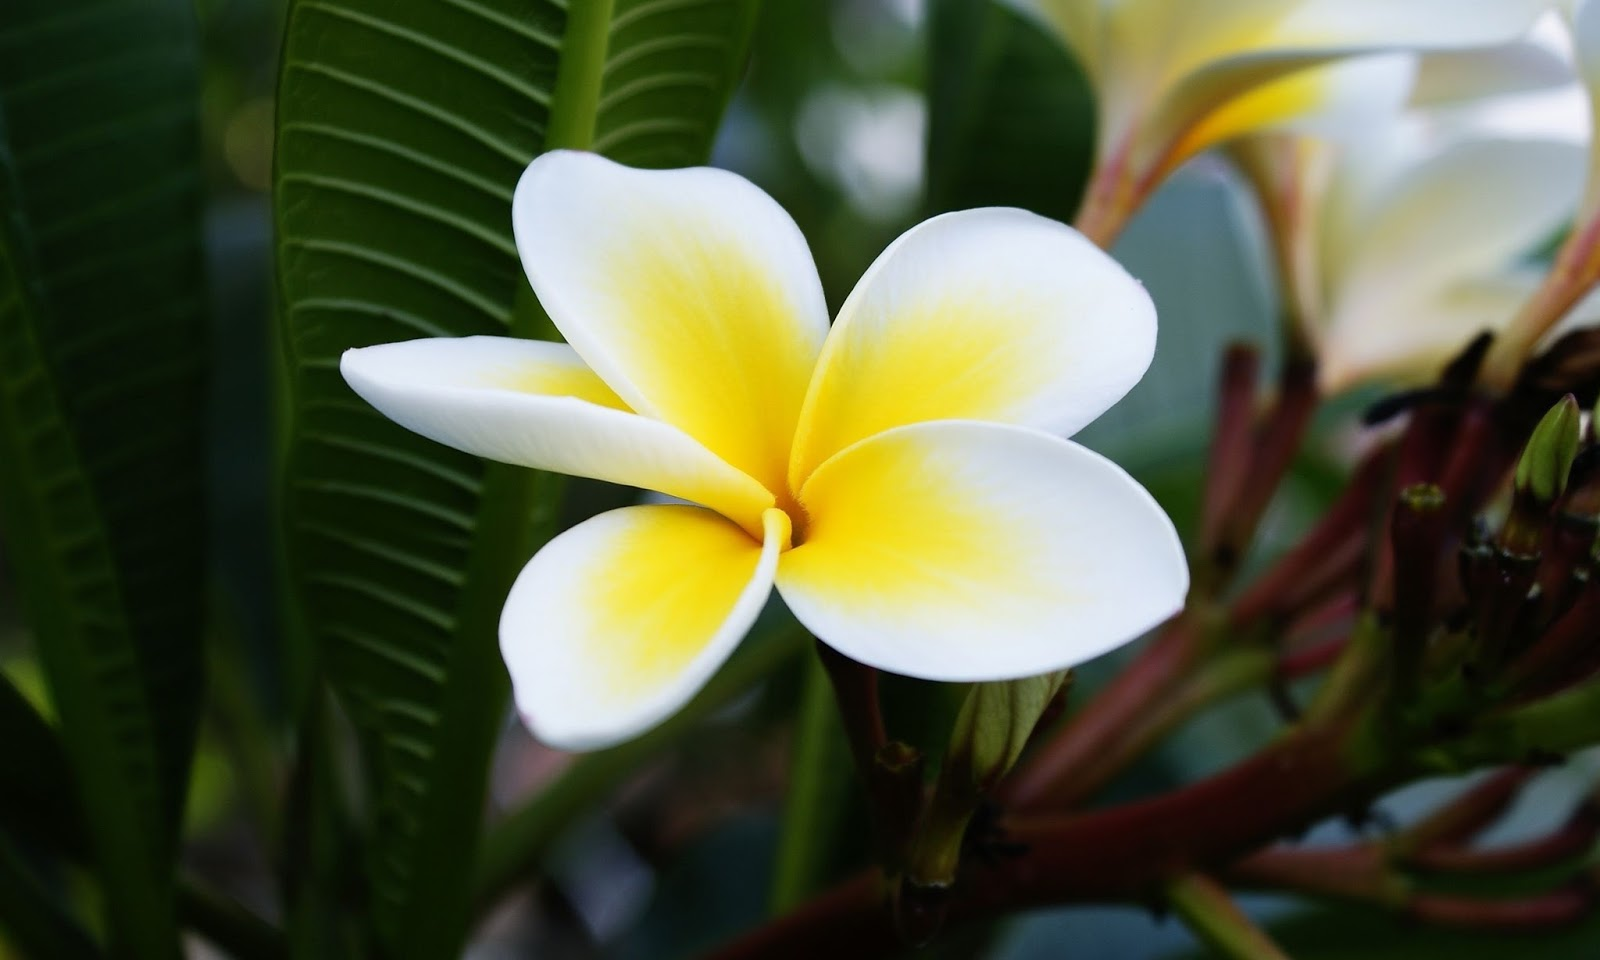 Plumeria frangipani hd wallpapers hd wallpapers high for 3d white flower wallpaper